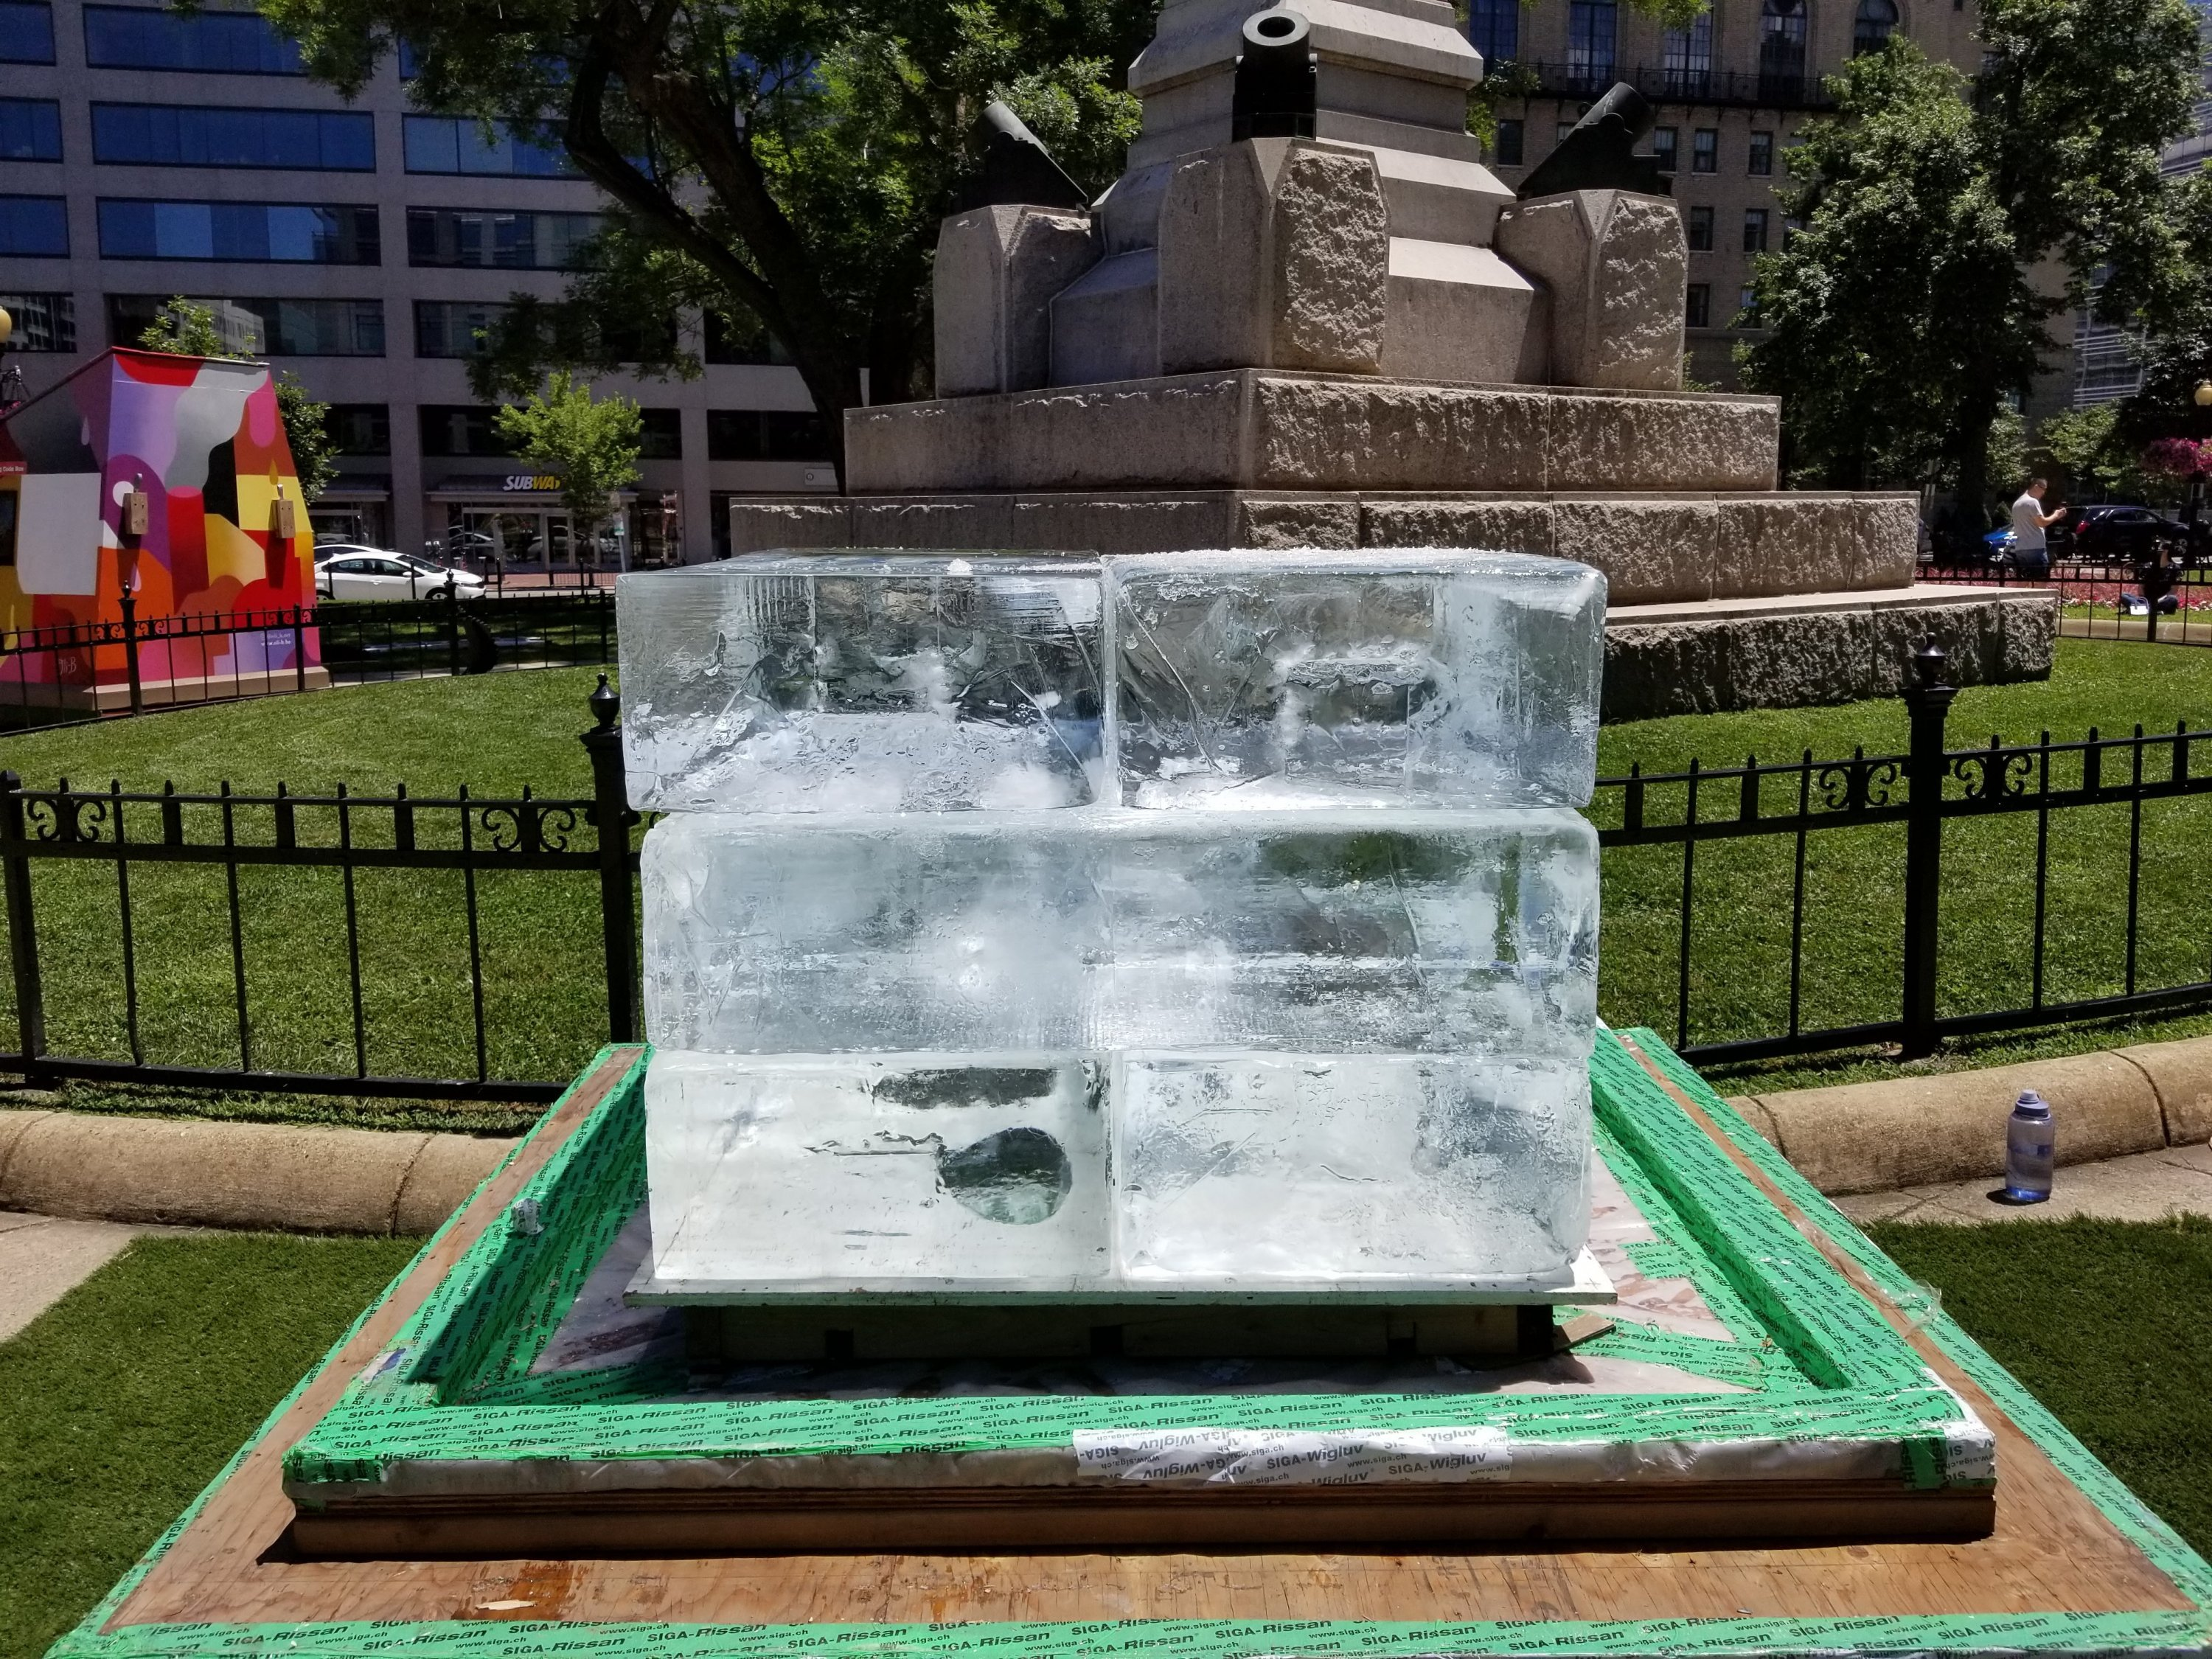 Europeans Have Brought Thousands of Pounds of Ice to a DC Park to Make Americans Feel Bad